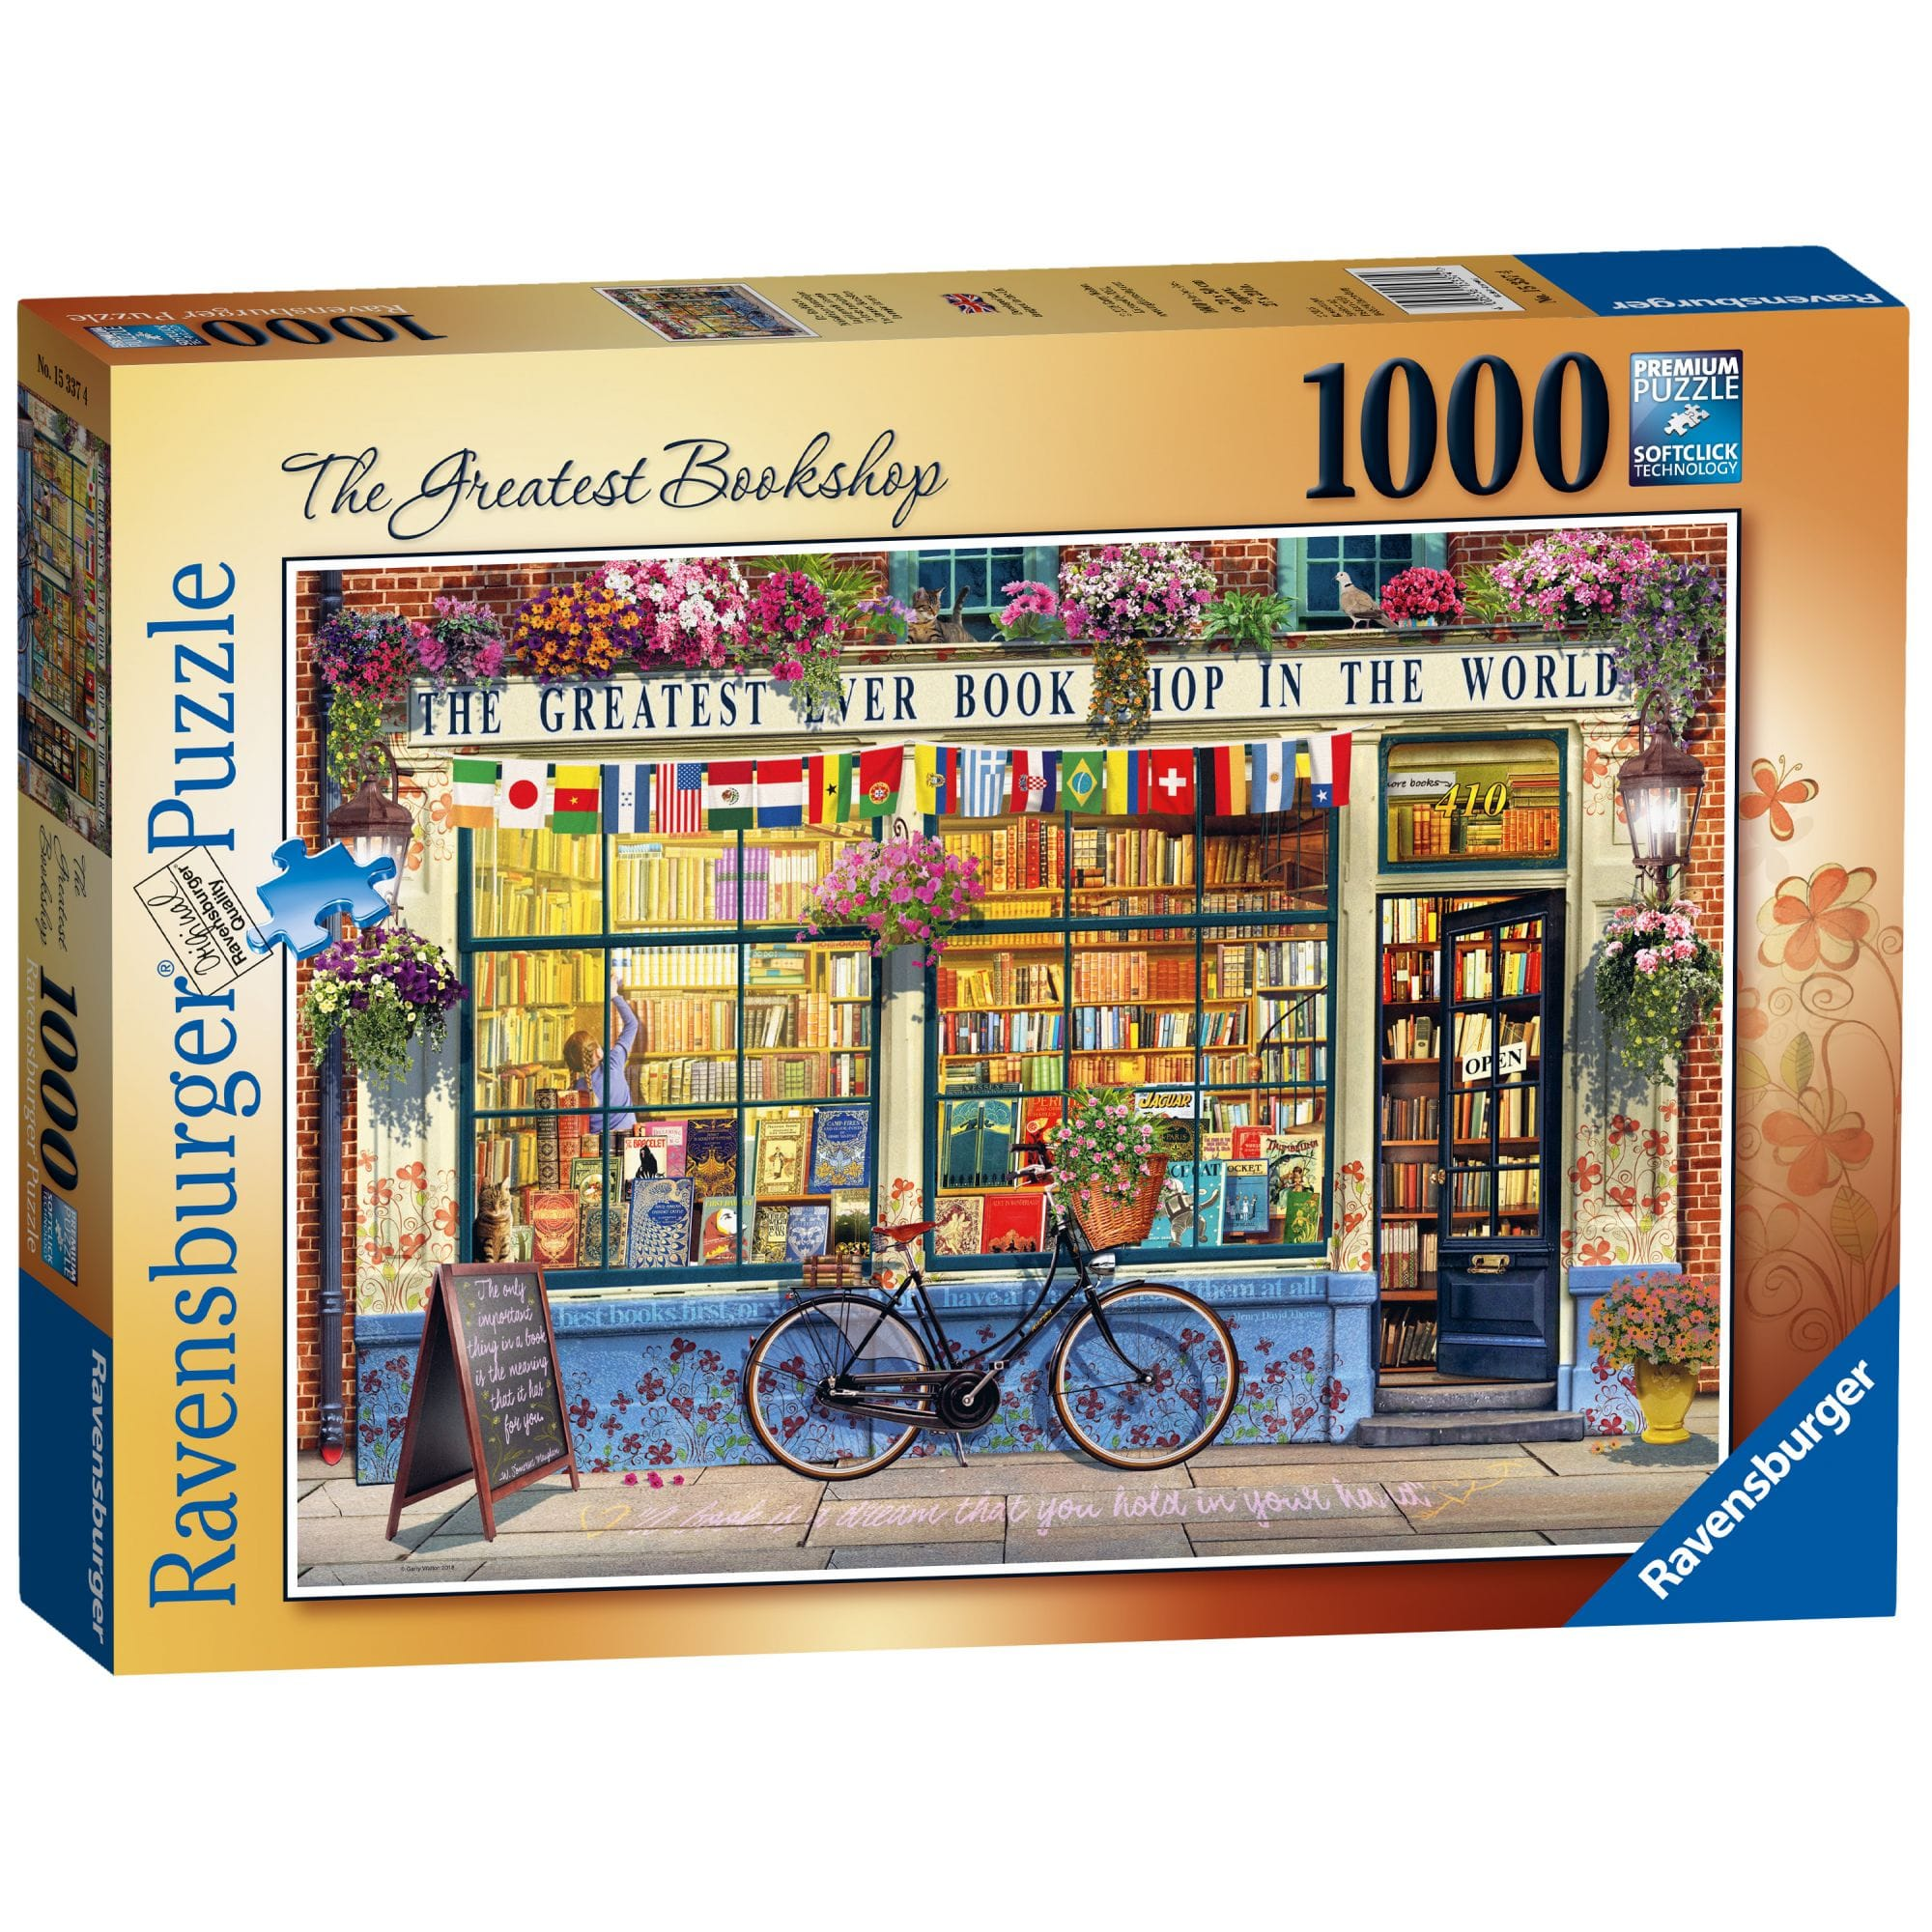 ravensburger doors of the world puzzle 1000 piece